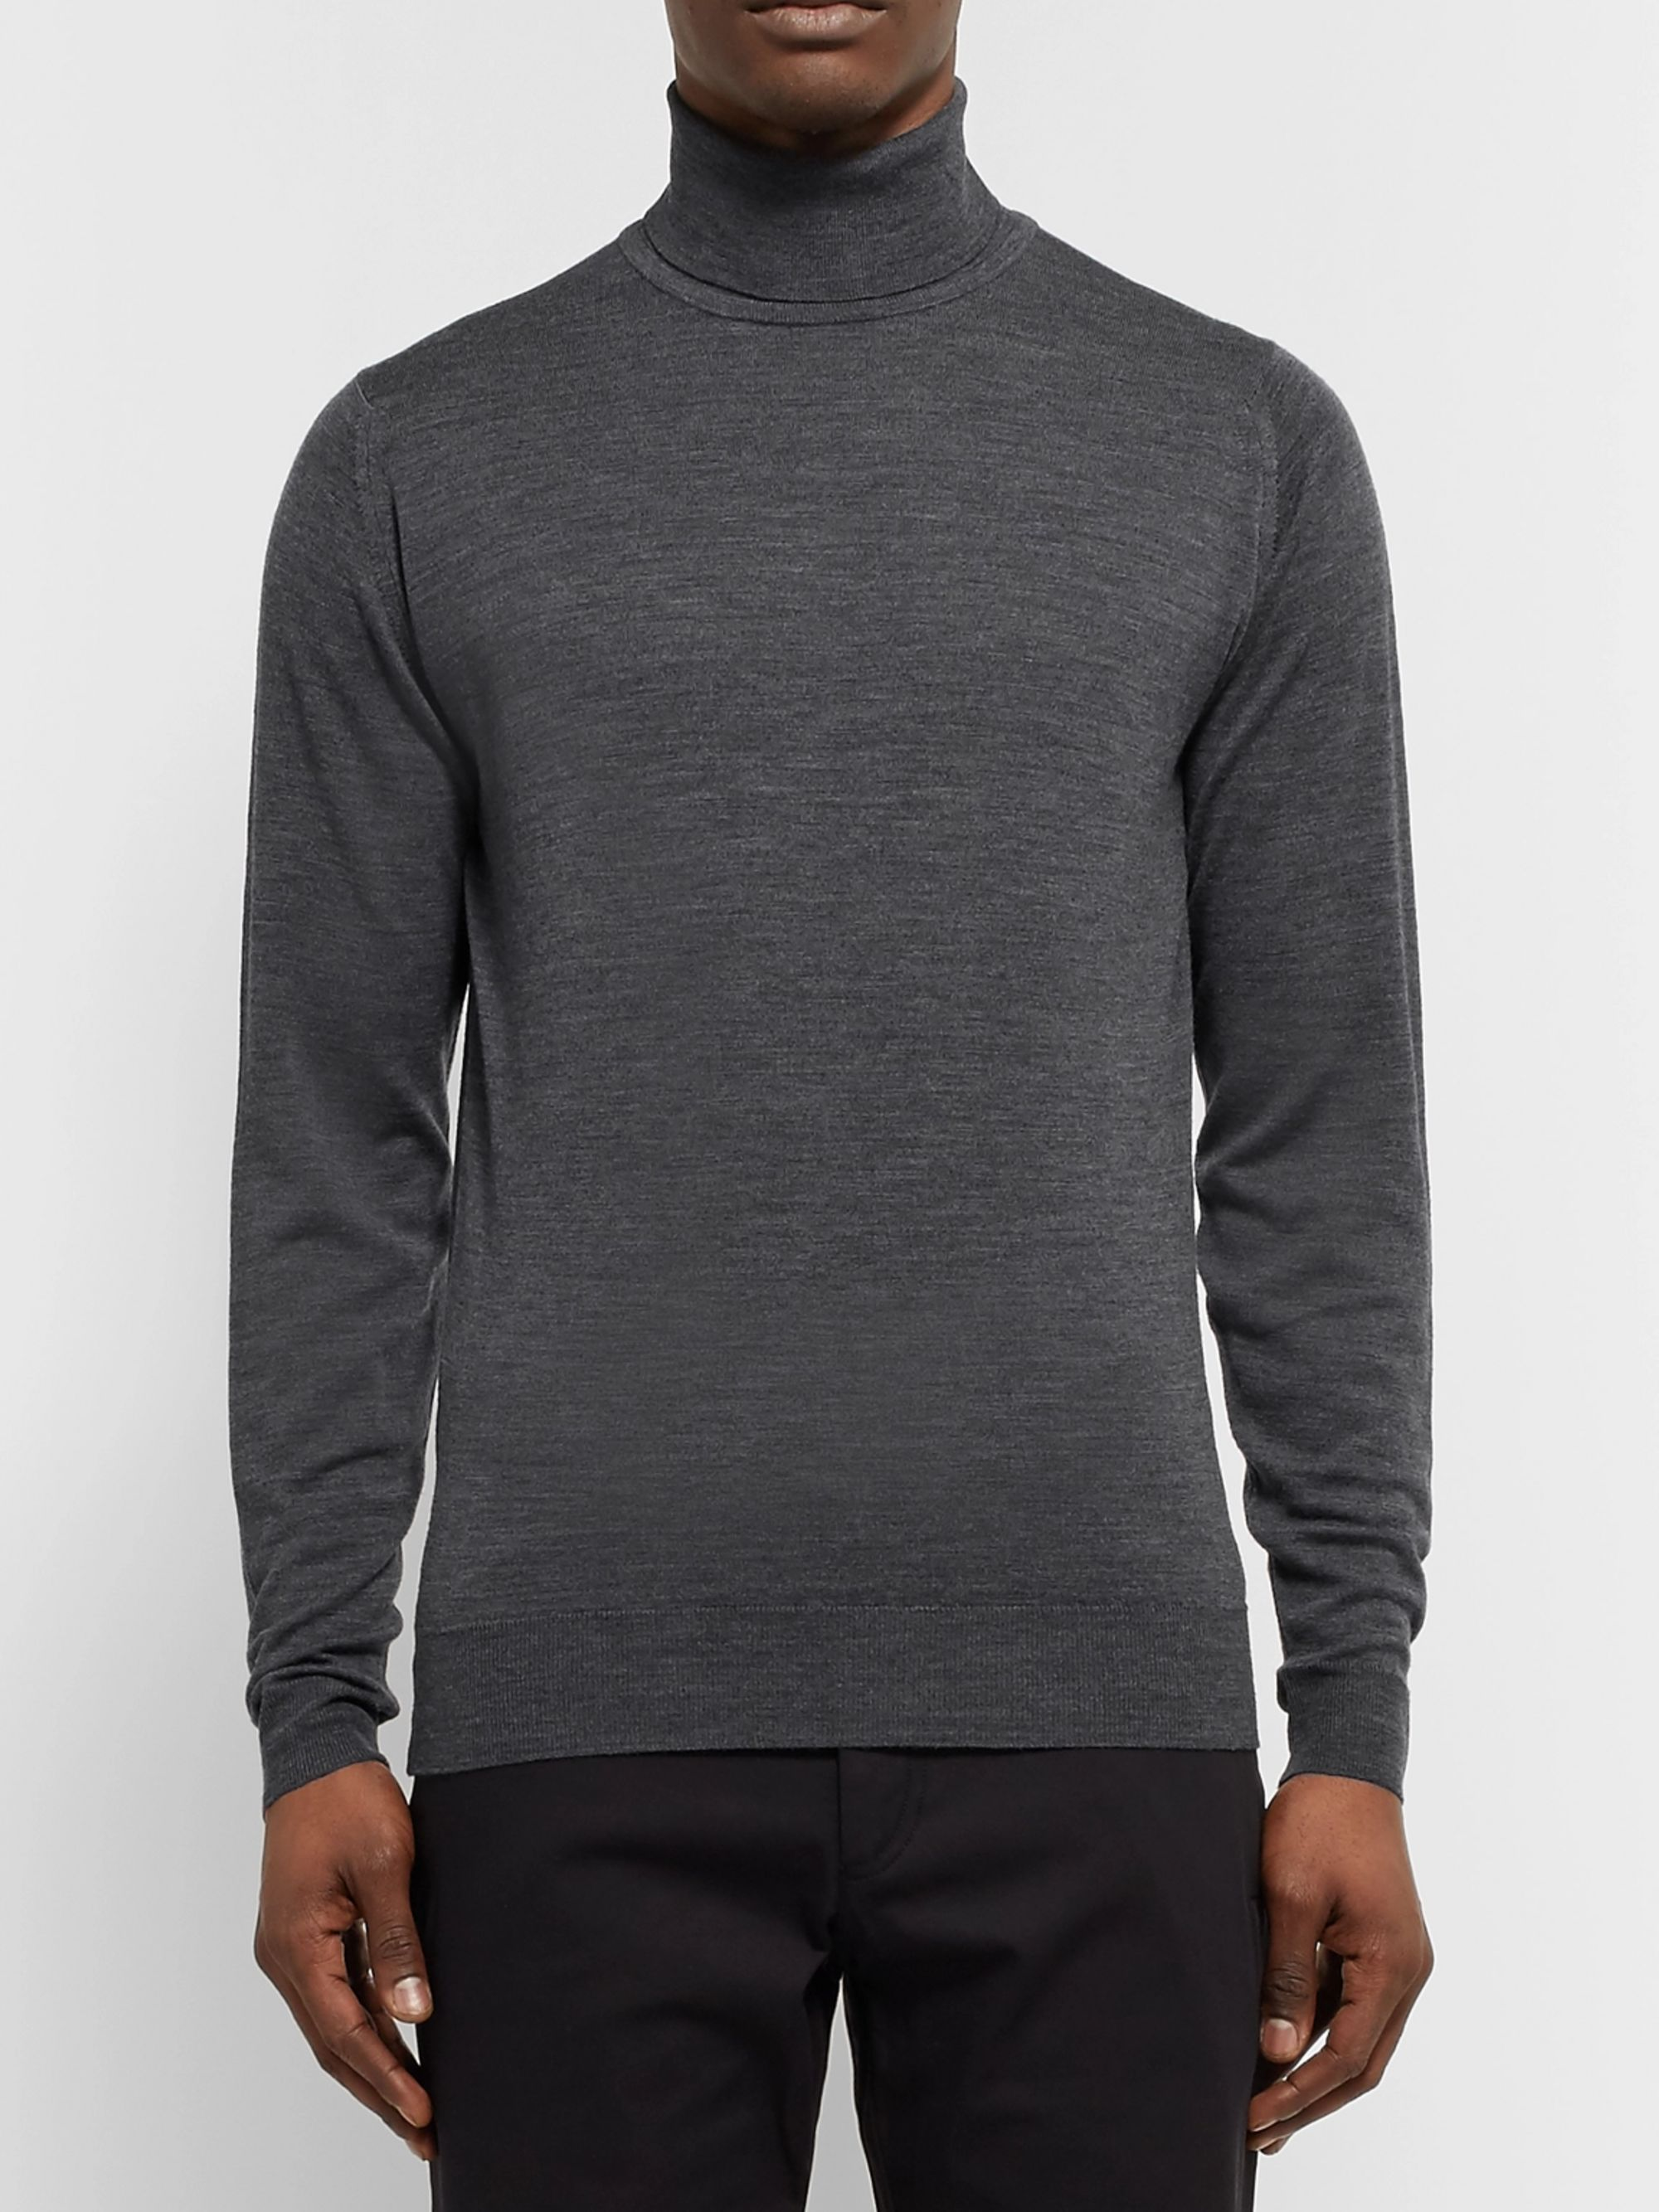 John Smedley Cherwell Slim-Fit Merino Wool Rollneck Sweater